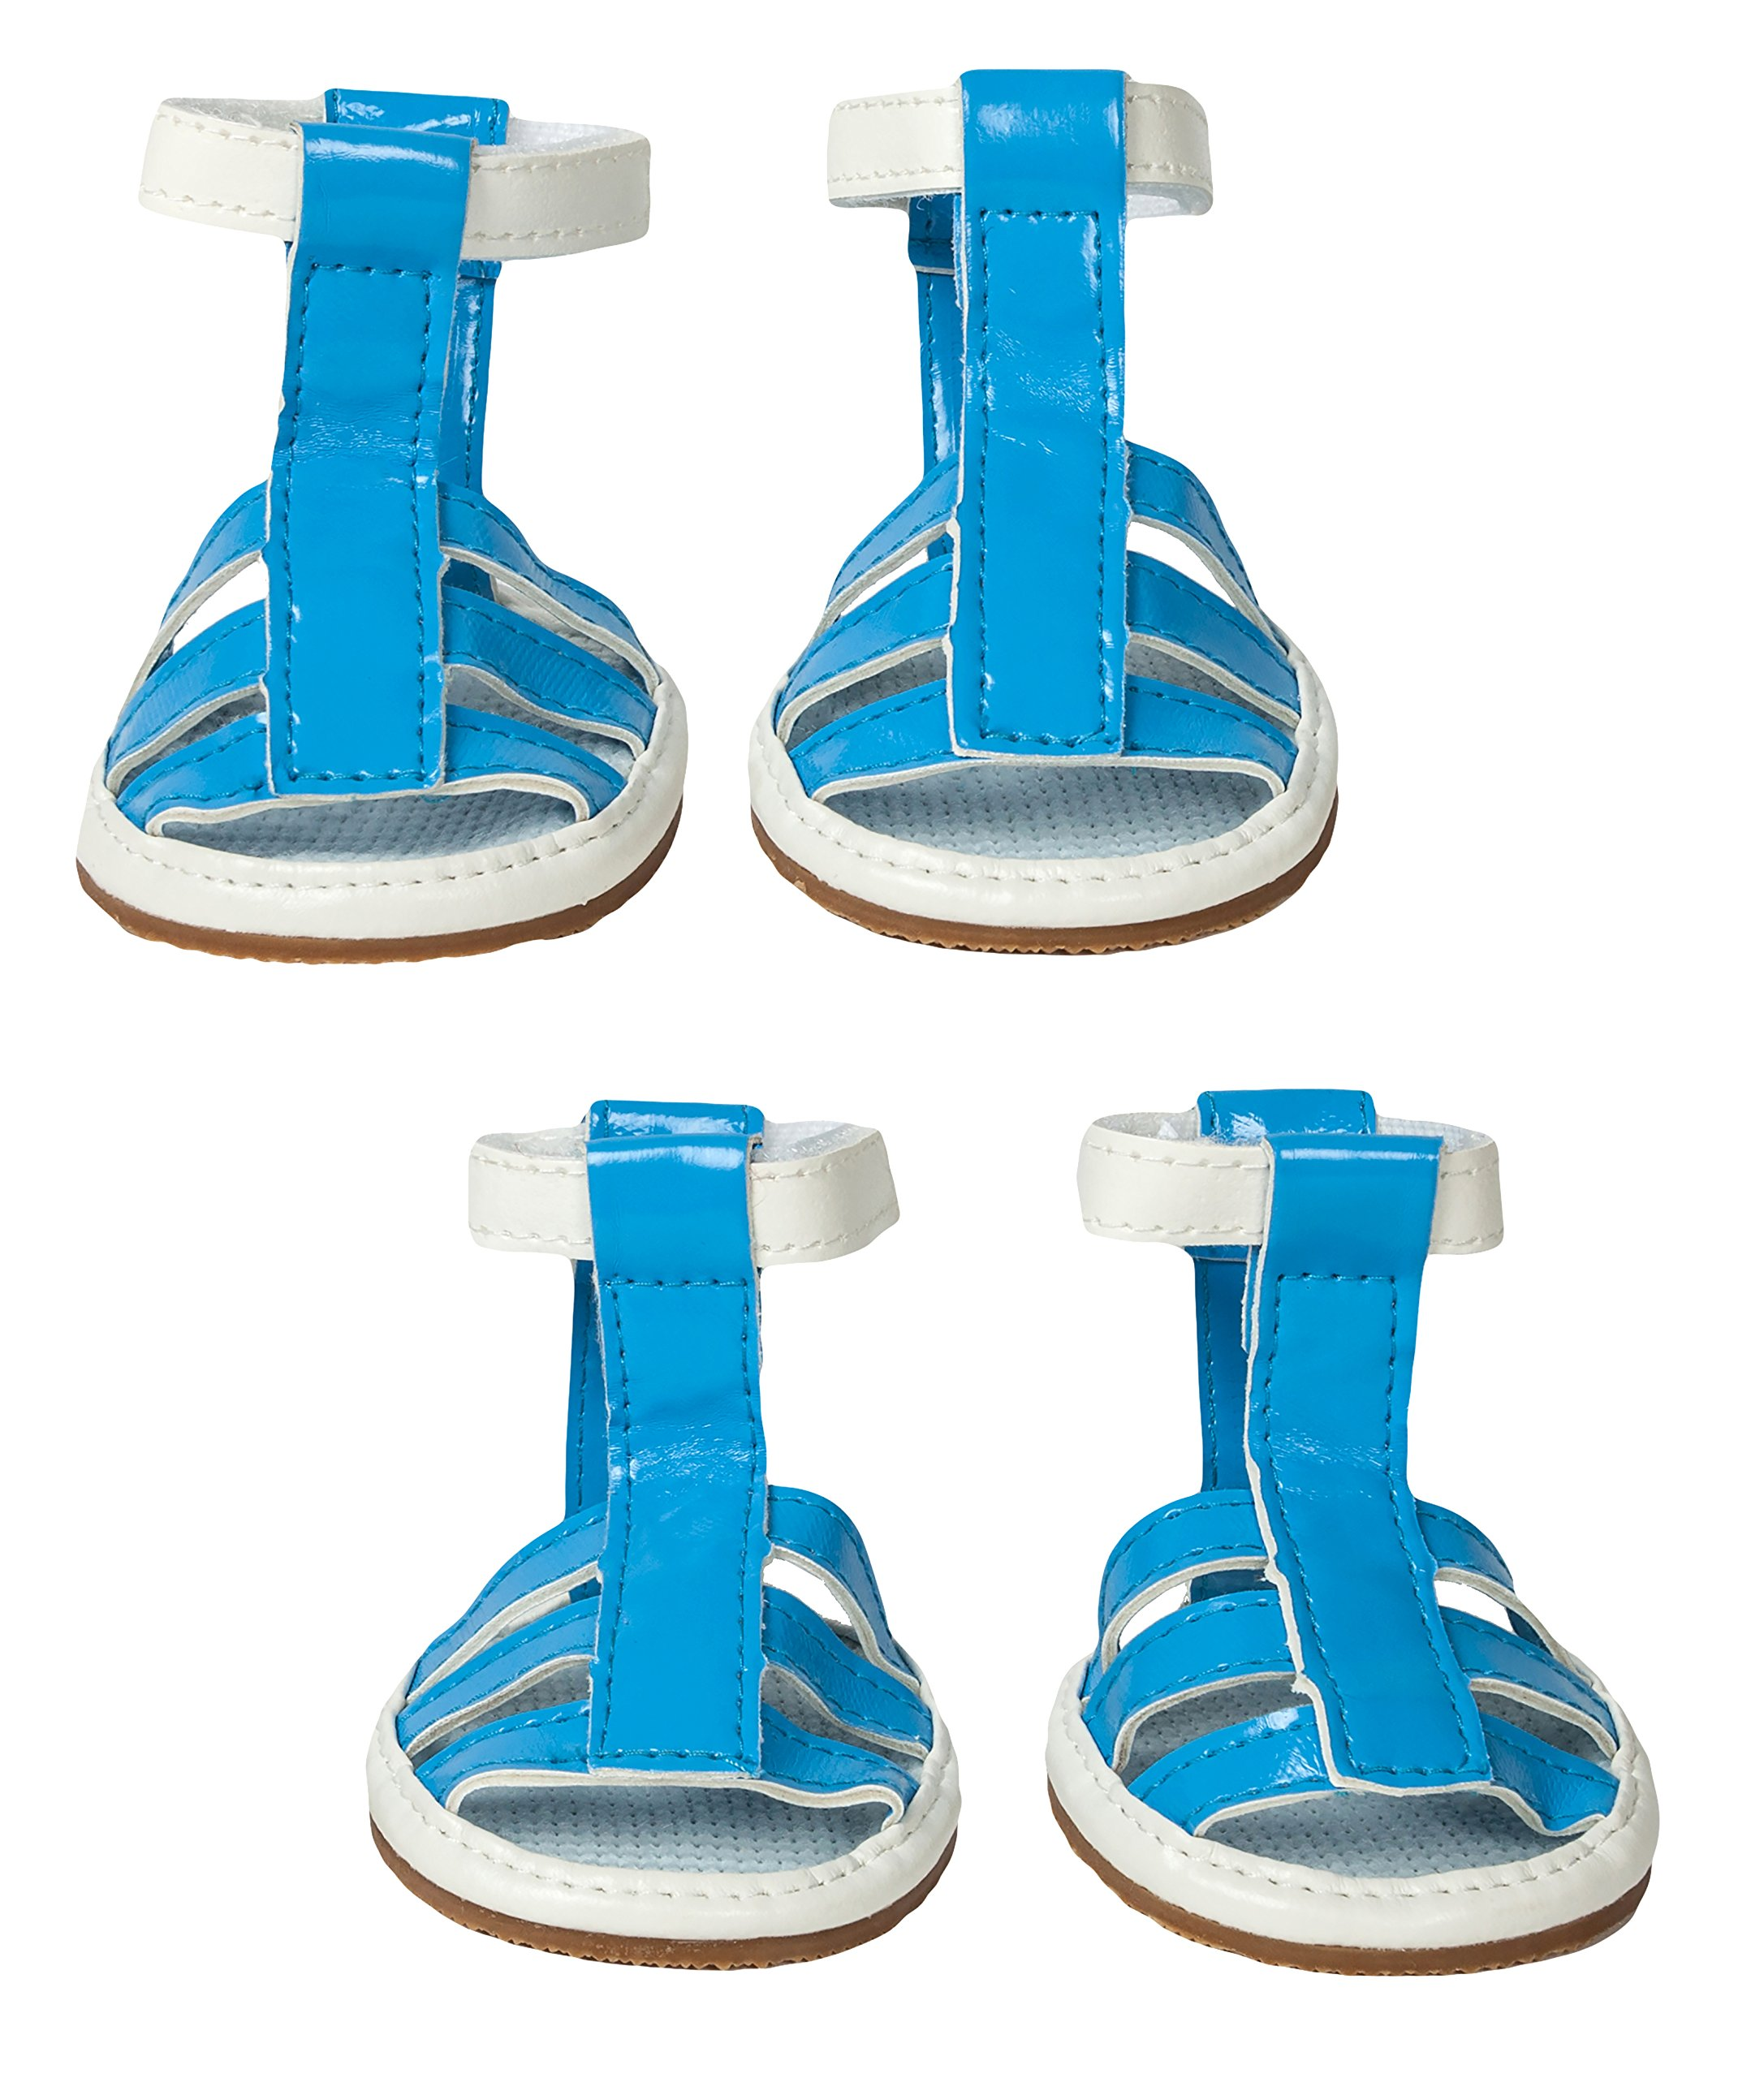 Pet Life Buckle Supportive' PVC Waterproof Pet Dog Sandals Shoes Booties - Set of 4, Small, Ocean Blue